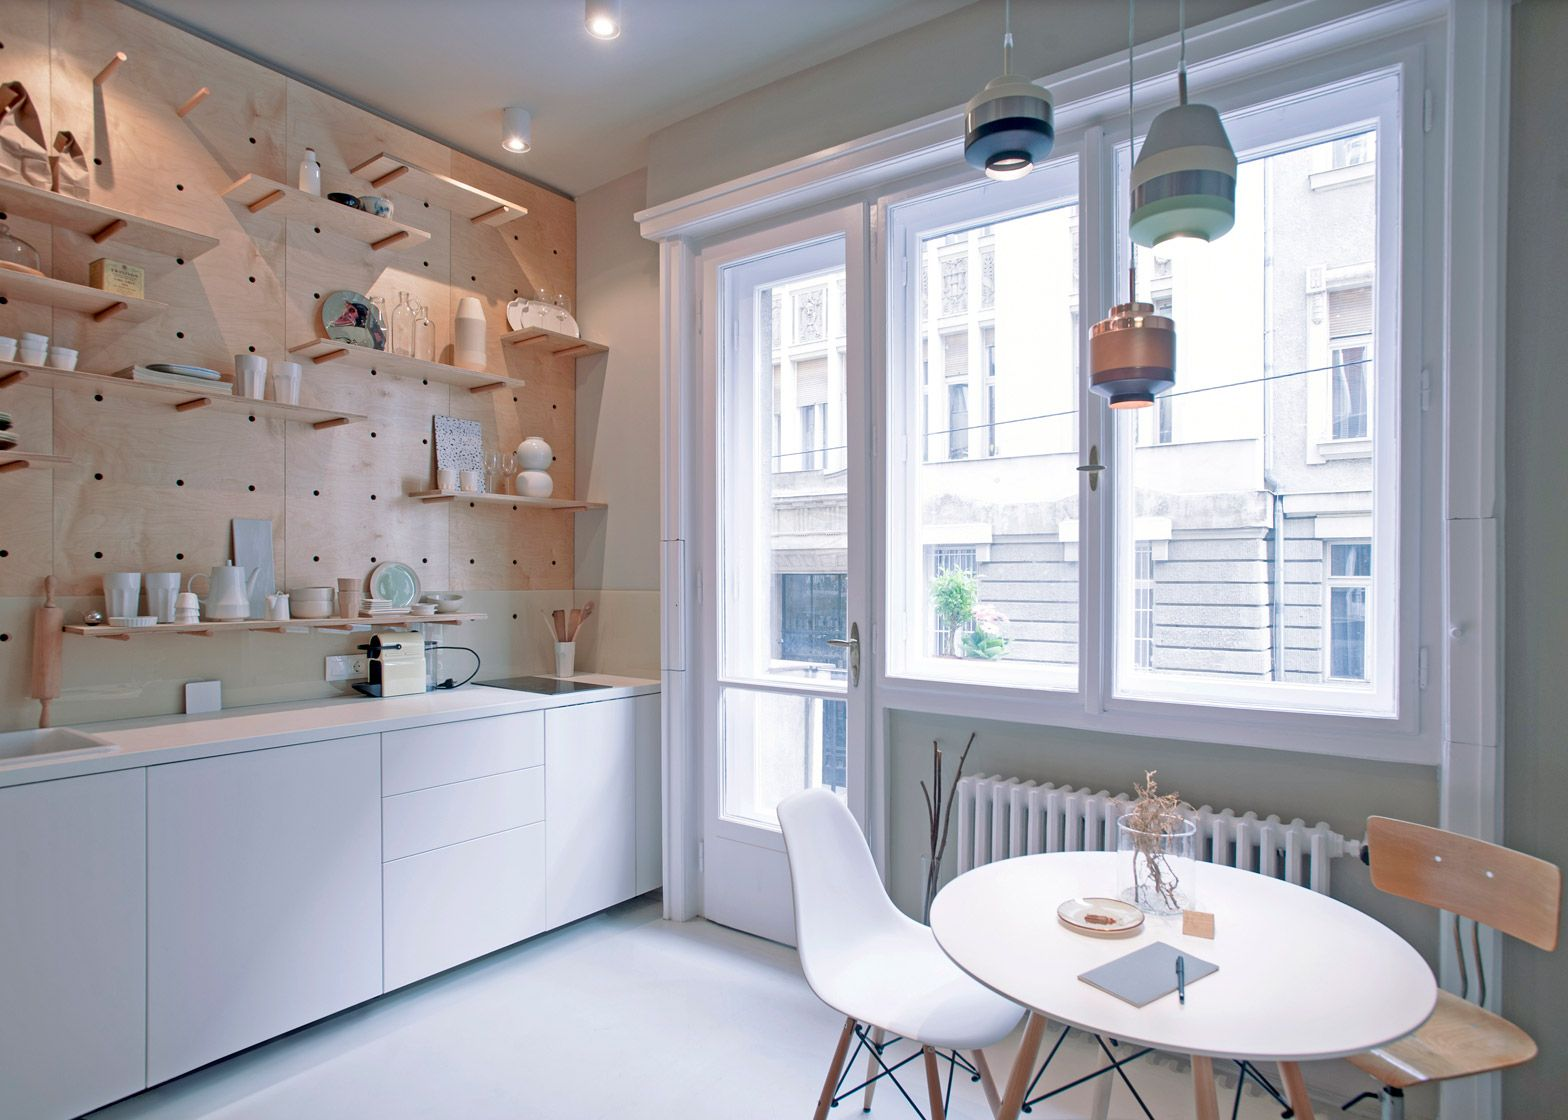 Dubbed AIRBNu0027P, This Tiny Apartment In Budapest Was Designed By Position  Collective To Be A Fun Place To Stay For Style Loving People Traveling To  The Area.